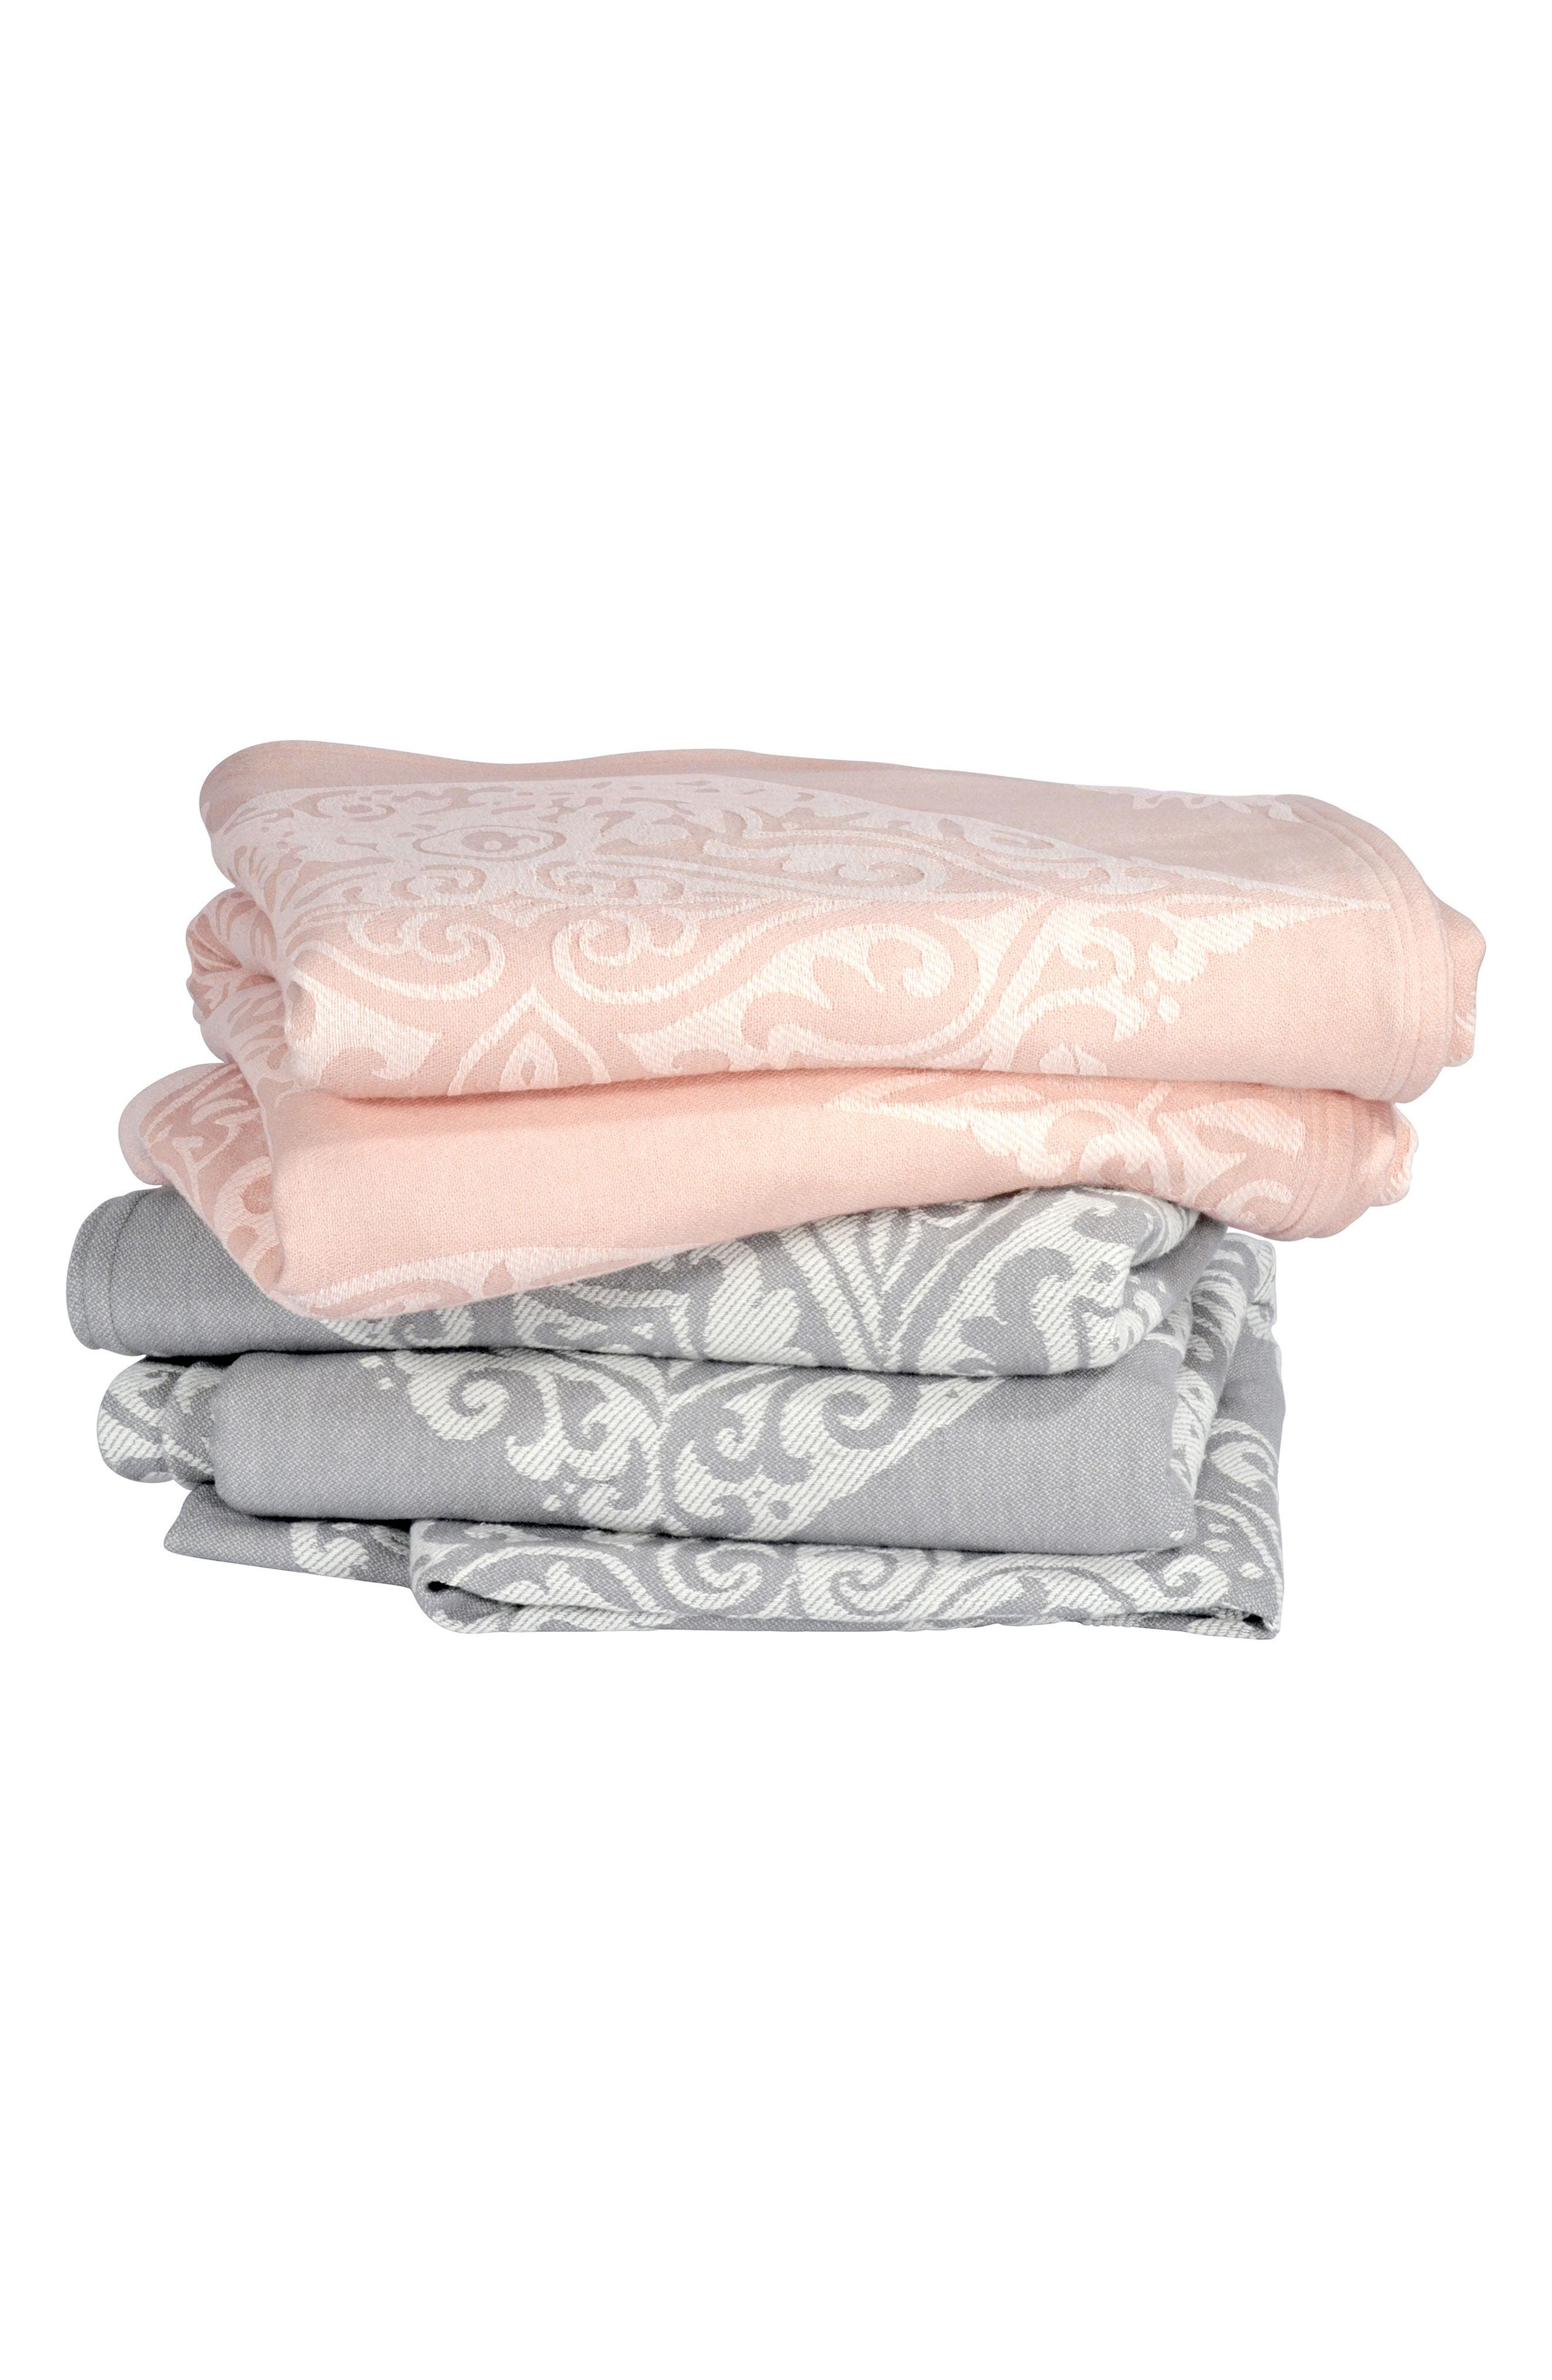 Damask Blanket,                             Alternate thumbnail 2, color,                             Blush